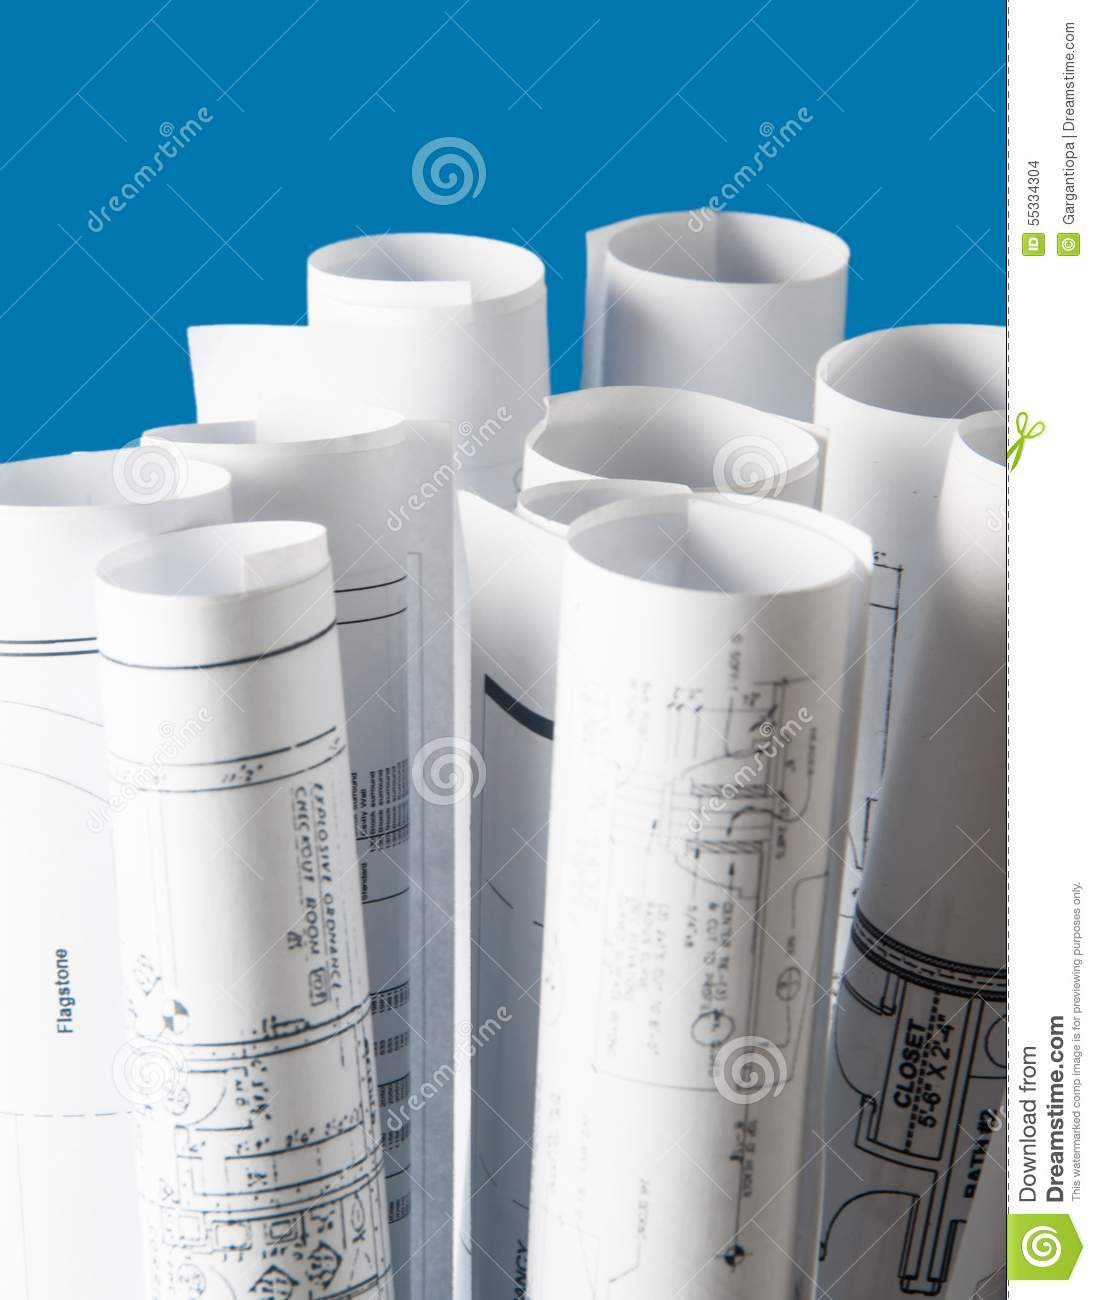 rolls of architecture blueprints and house plans stock photo architecture